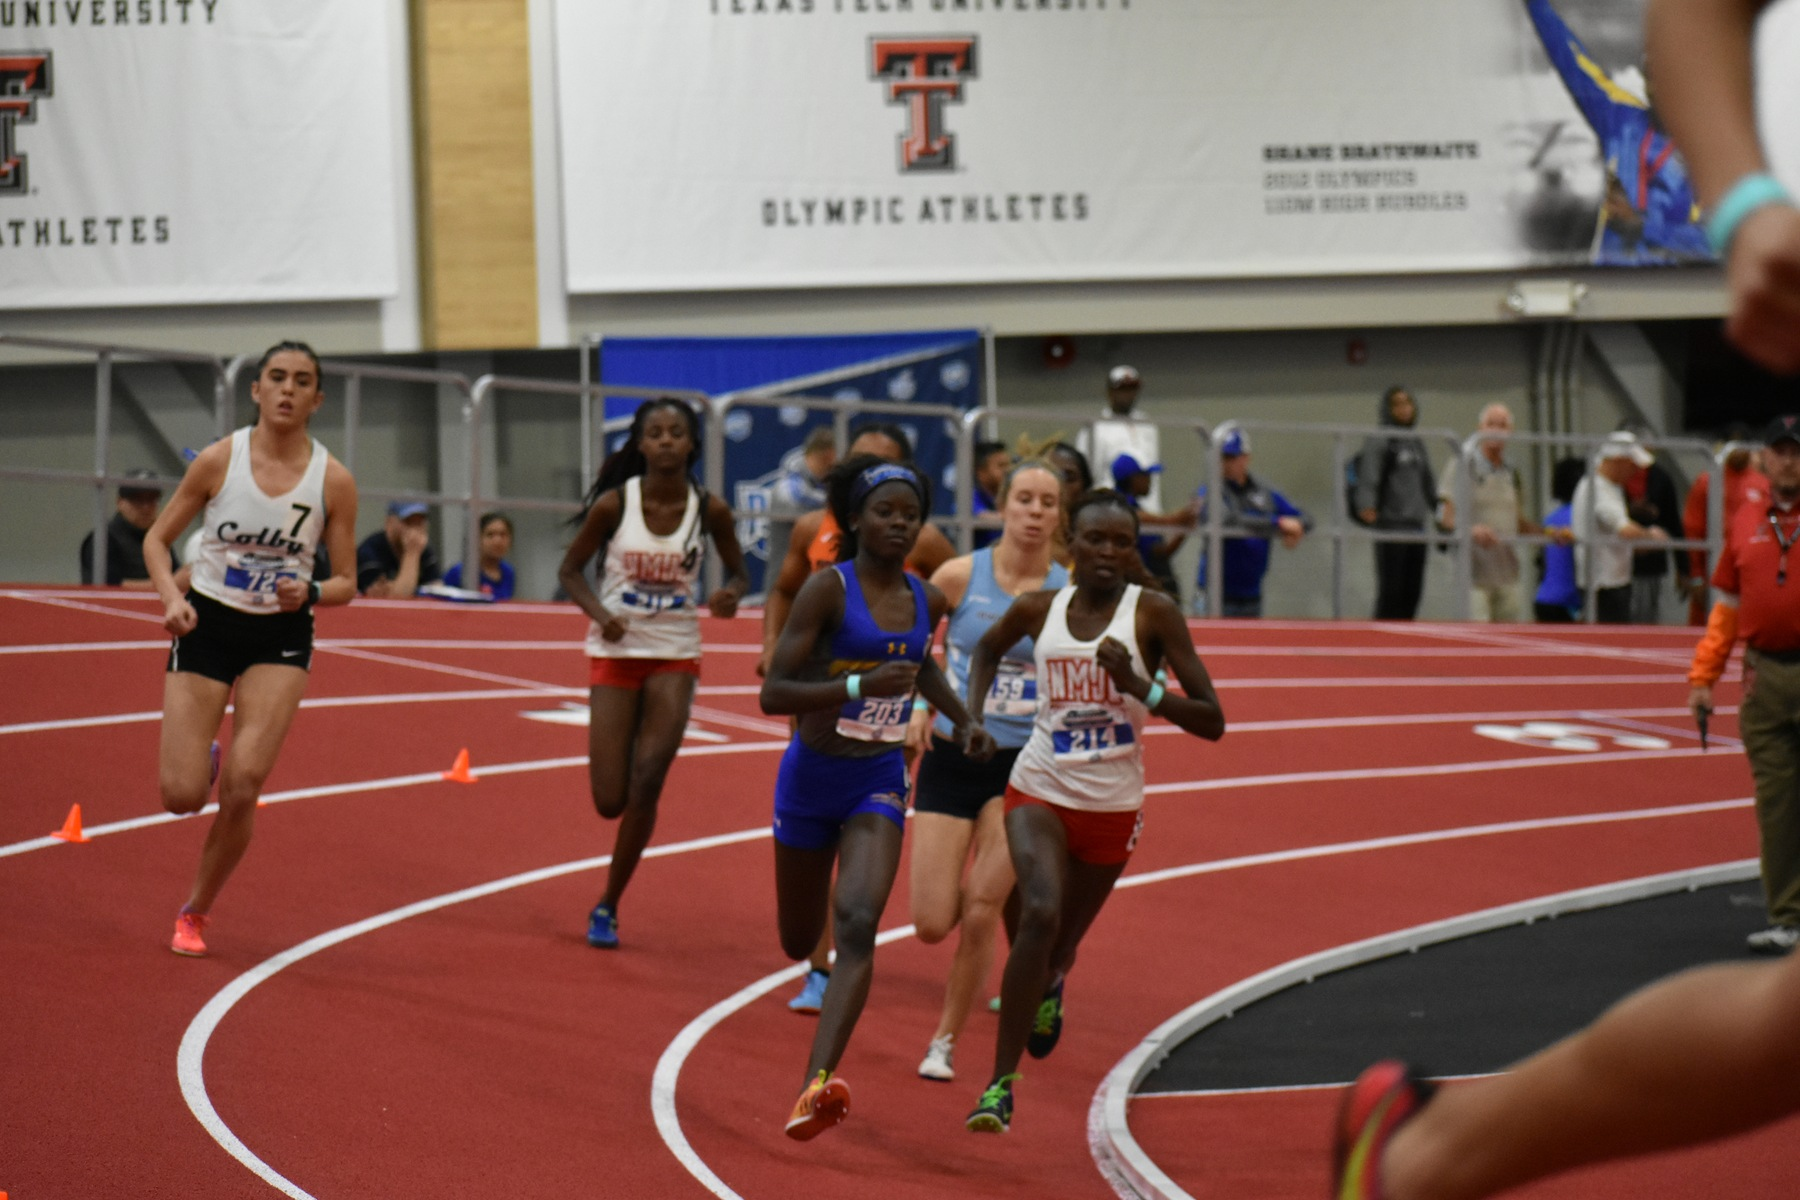 Jacobs Named USTFCCCA National Athlete of the Week